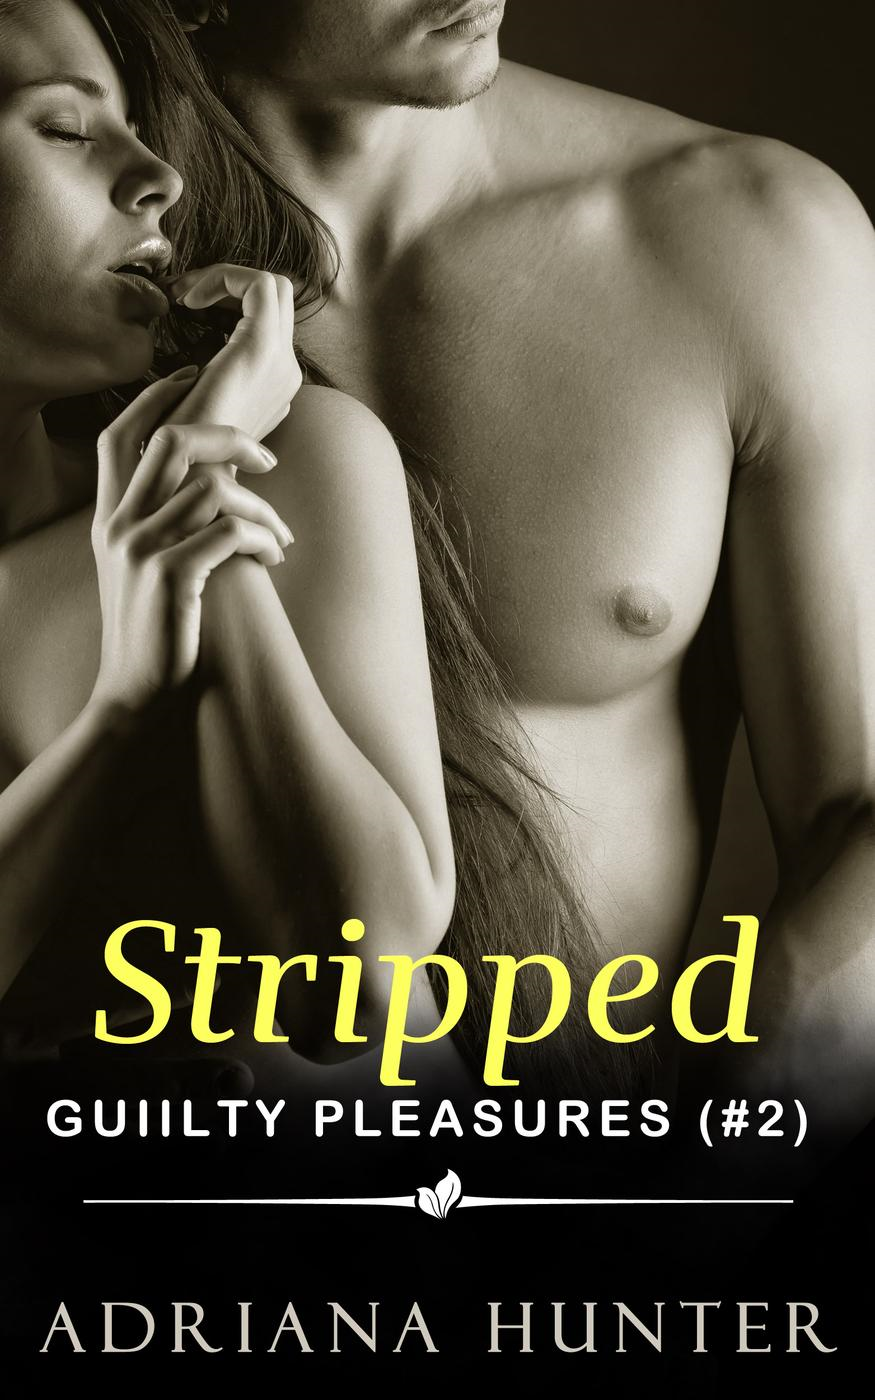 Stripped  Guilty Pleasures #2  - BBW Erotic Romance